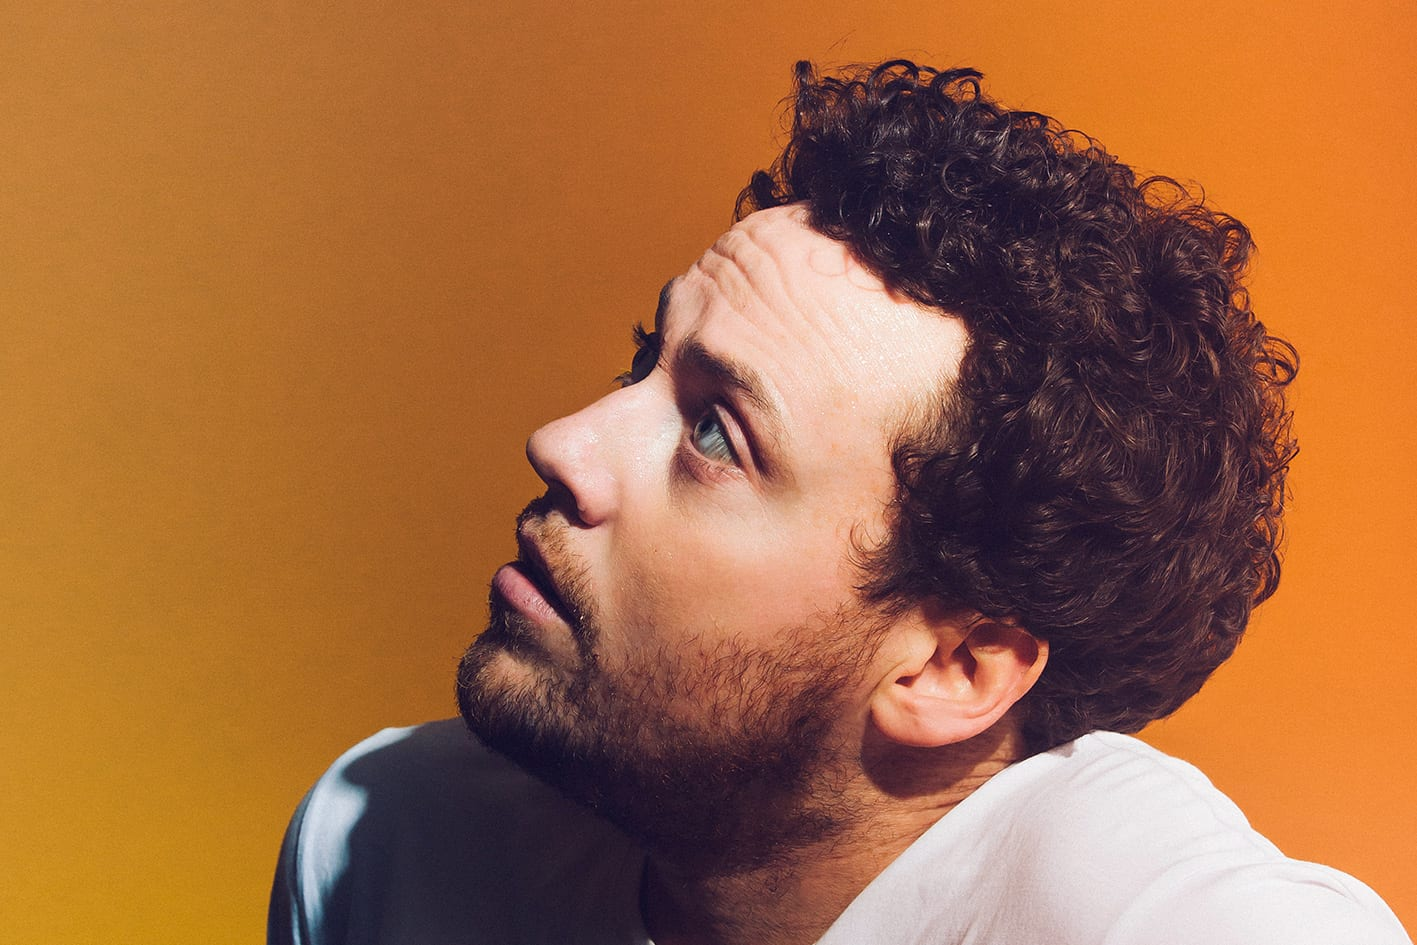 metronomy-new-album-summer-08-interview-antidote